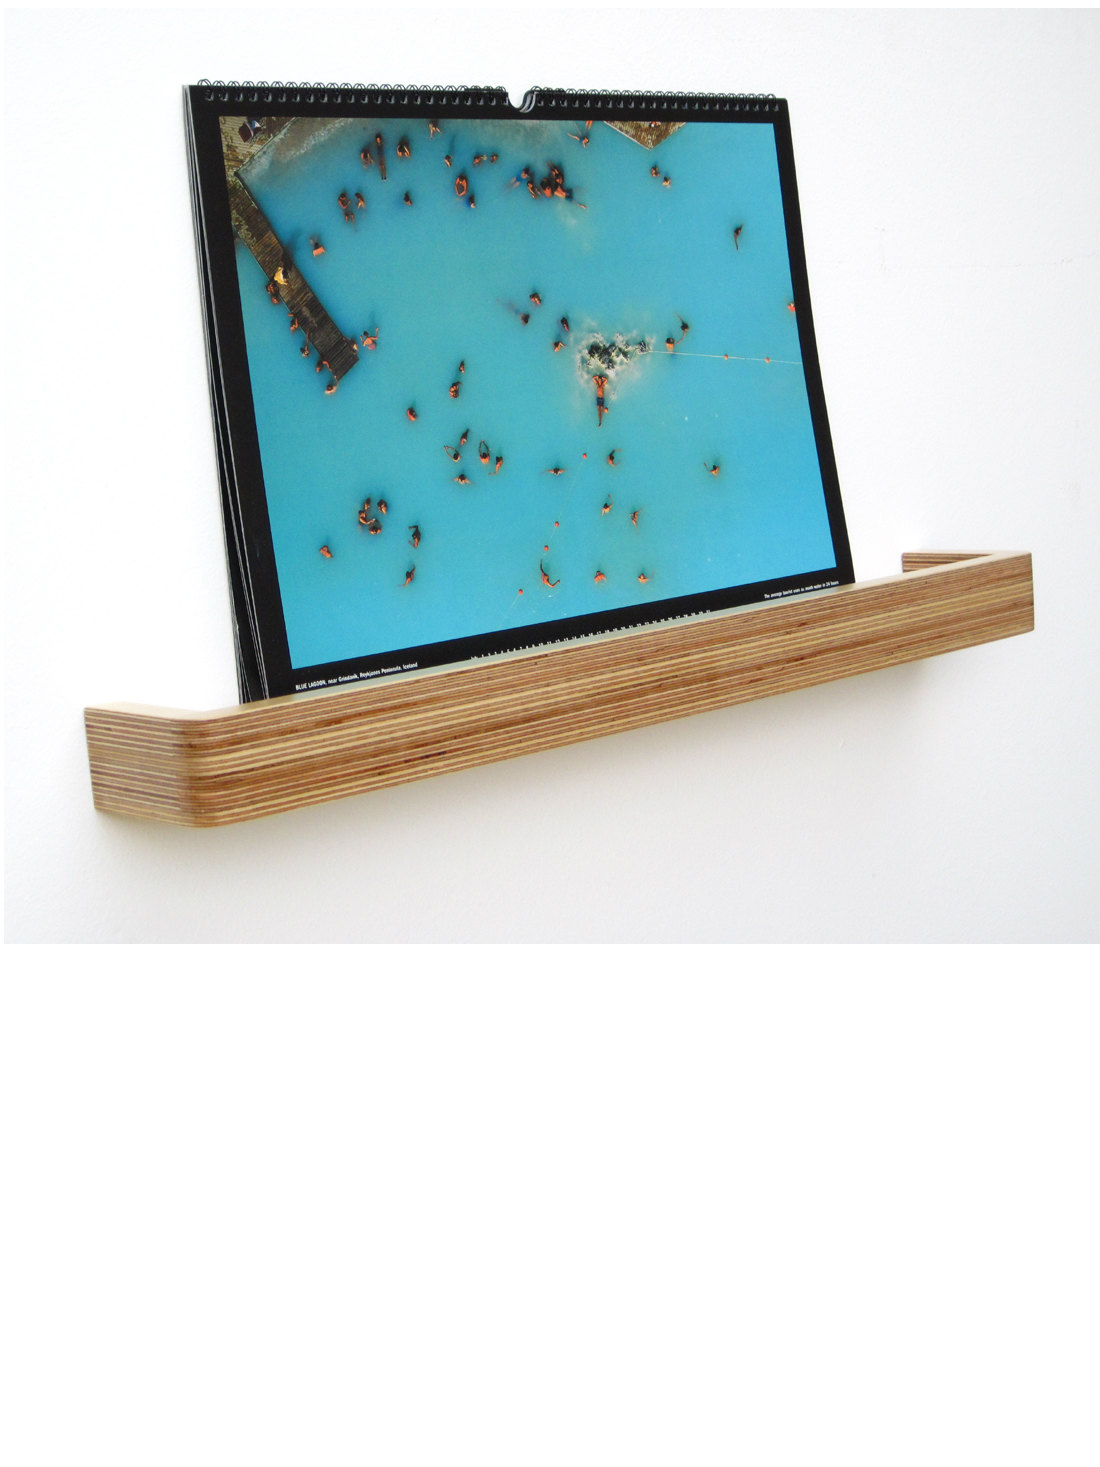 Picture Ledge Floating Shelf from brightblueliving